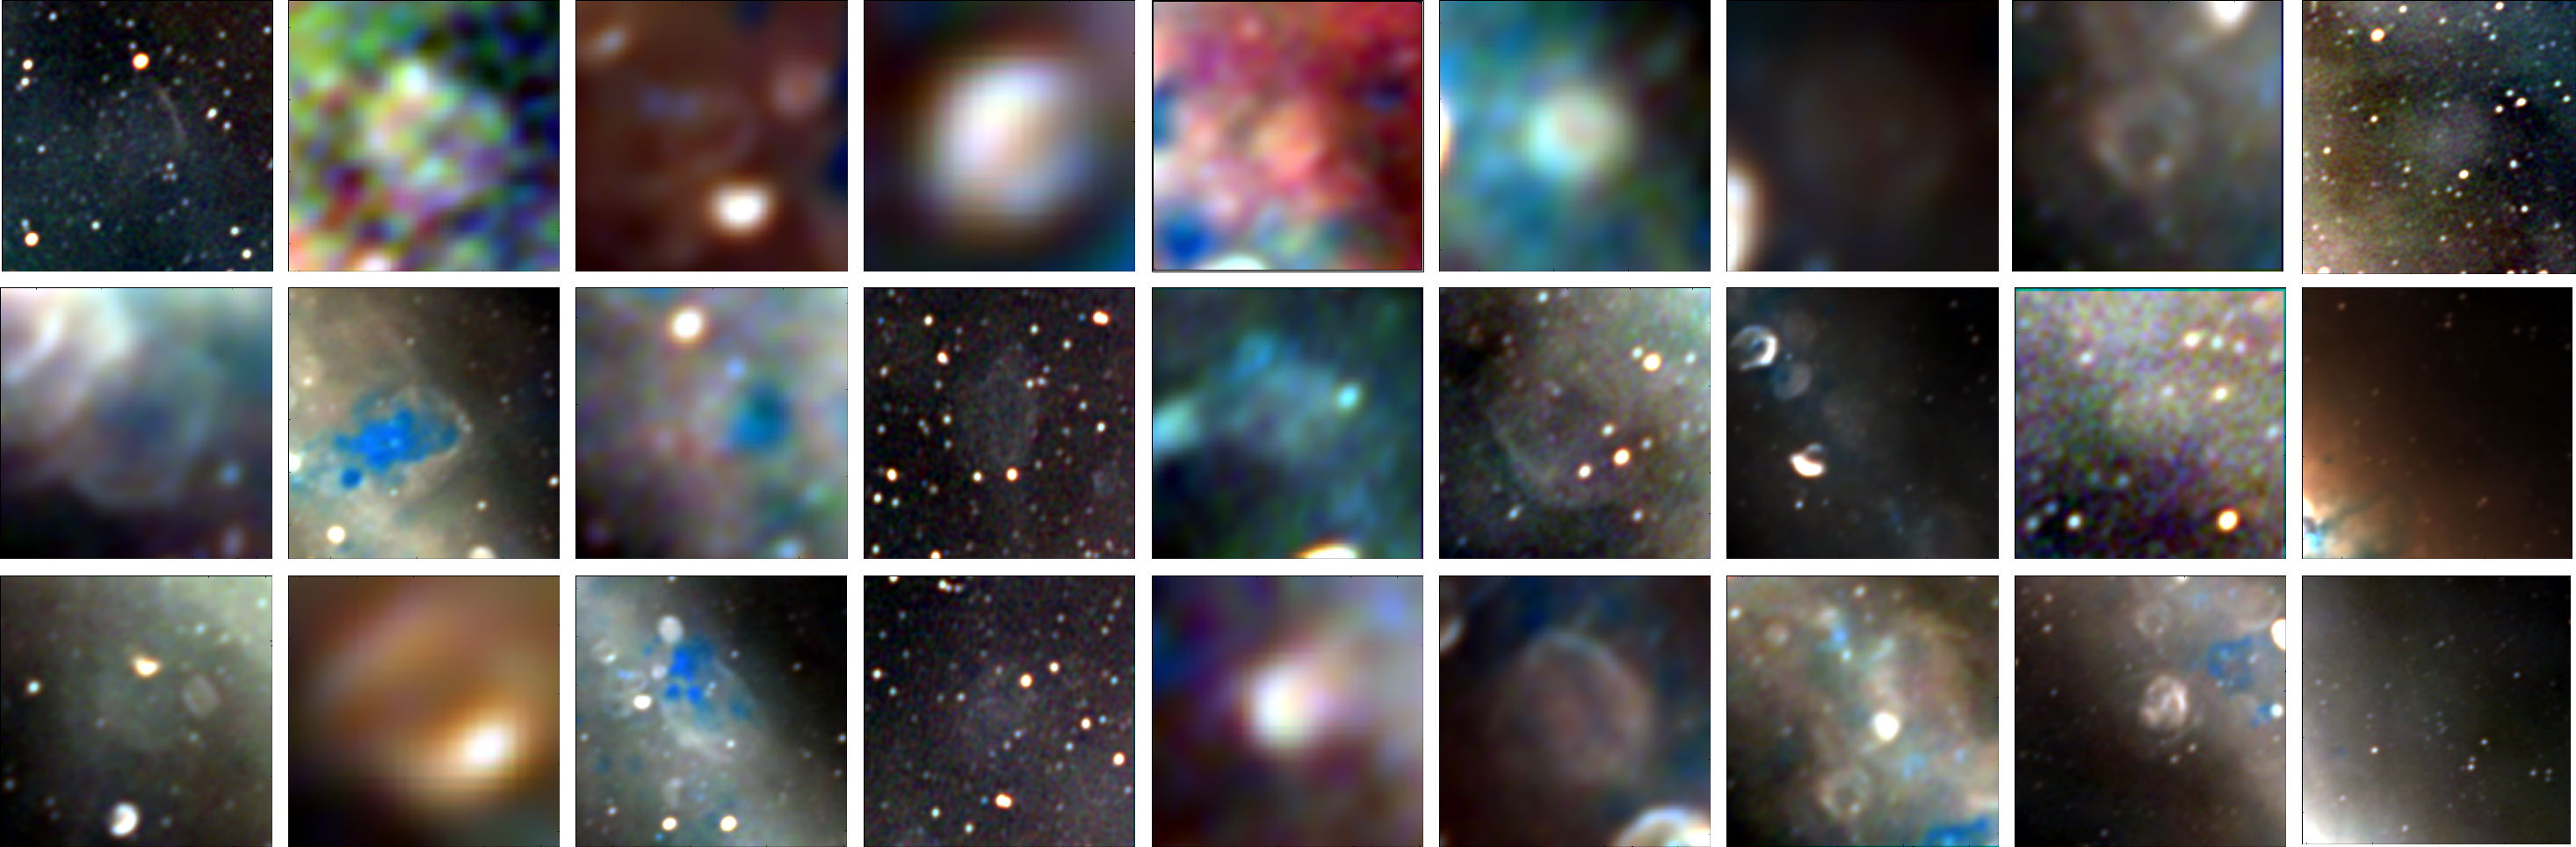 Grid of 27 images (3 x 9) showing zoomed in images of the new supernova remnants.